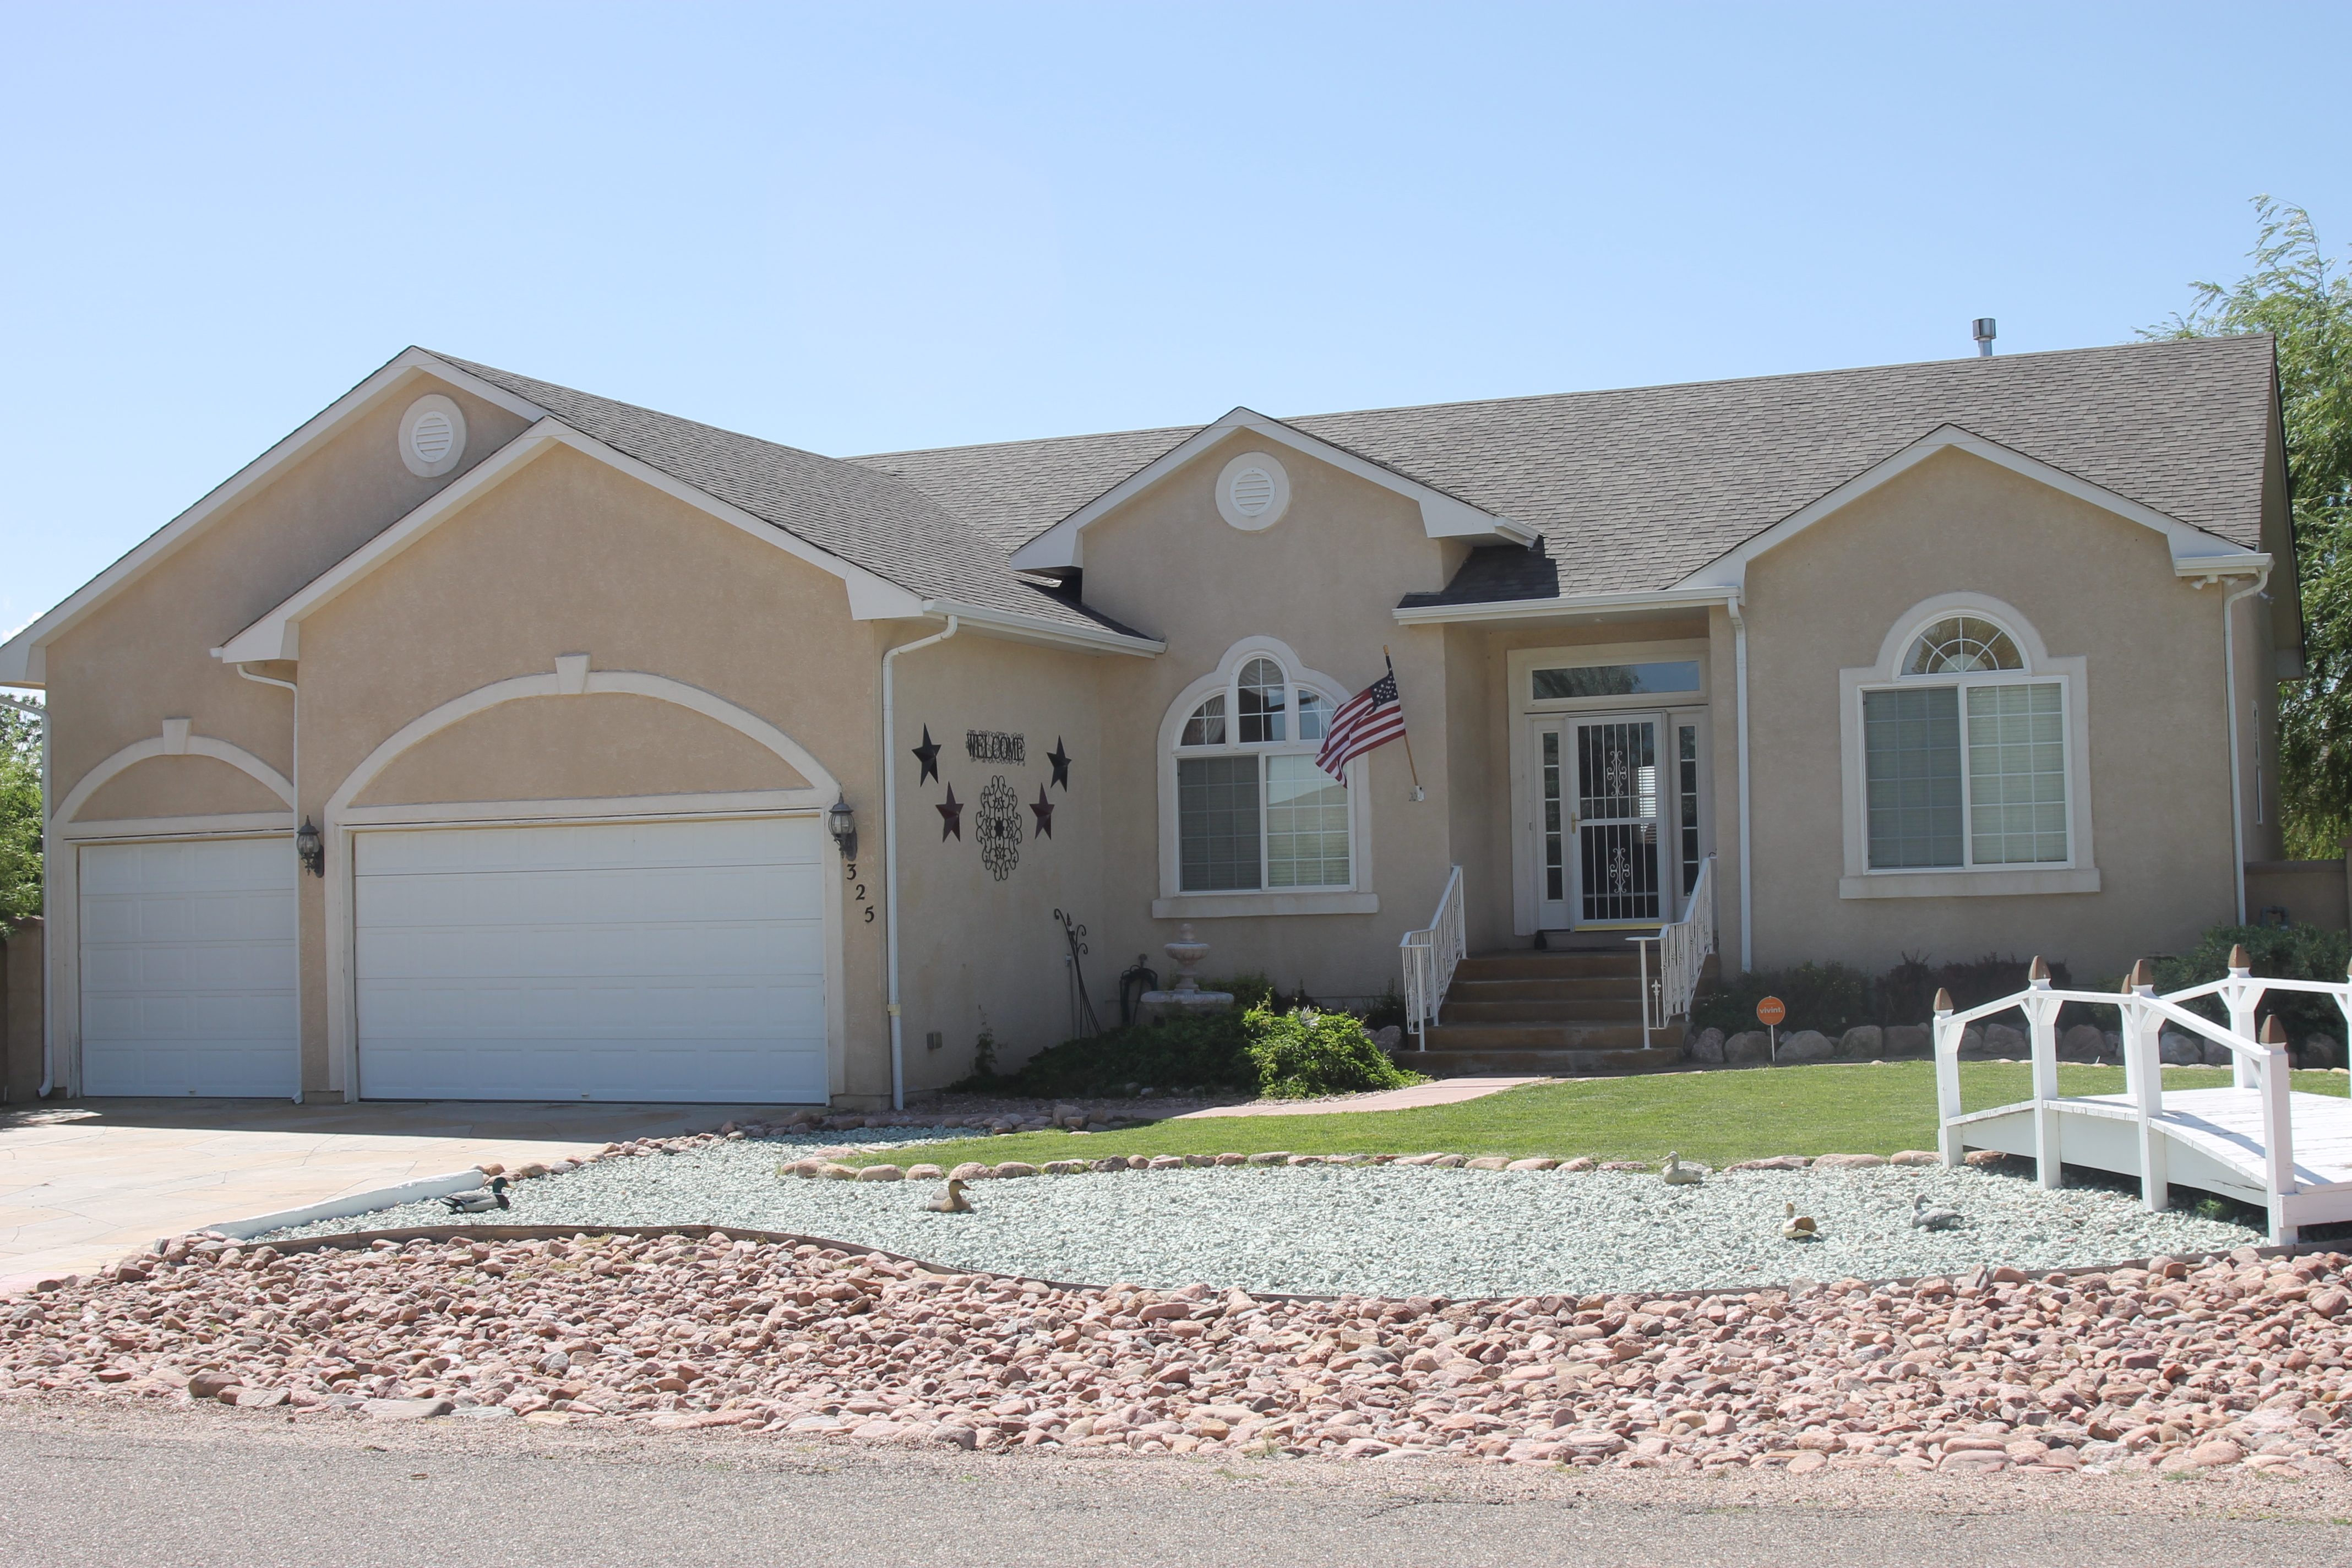 325 Casper Dr, Pueblo West CO  81007